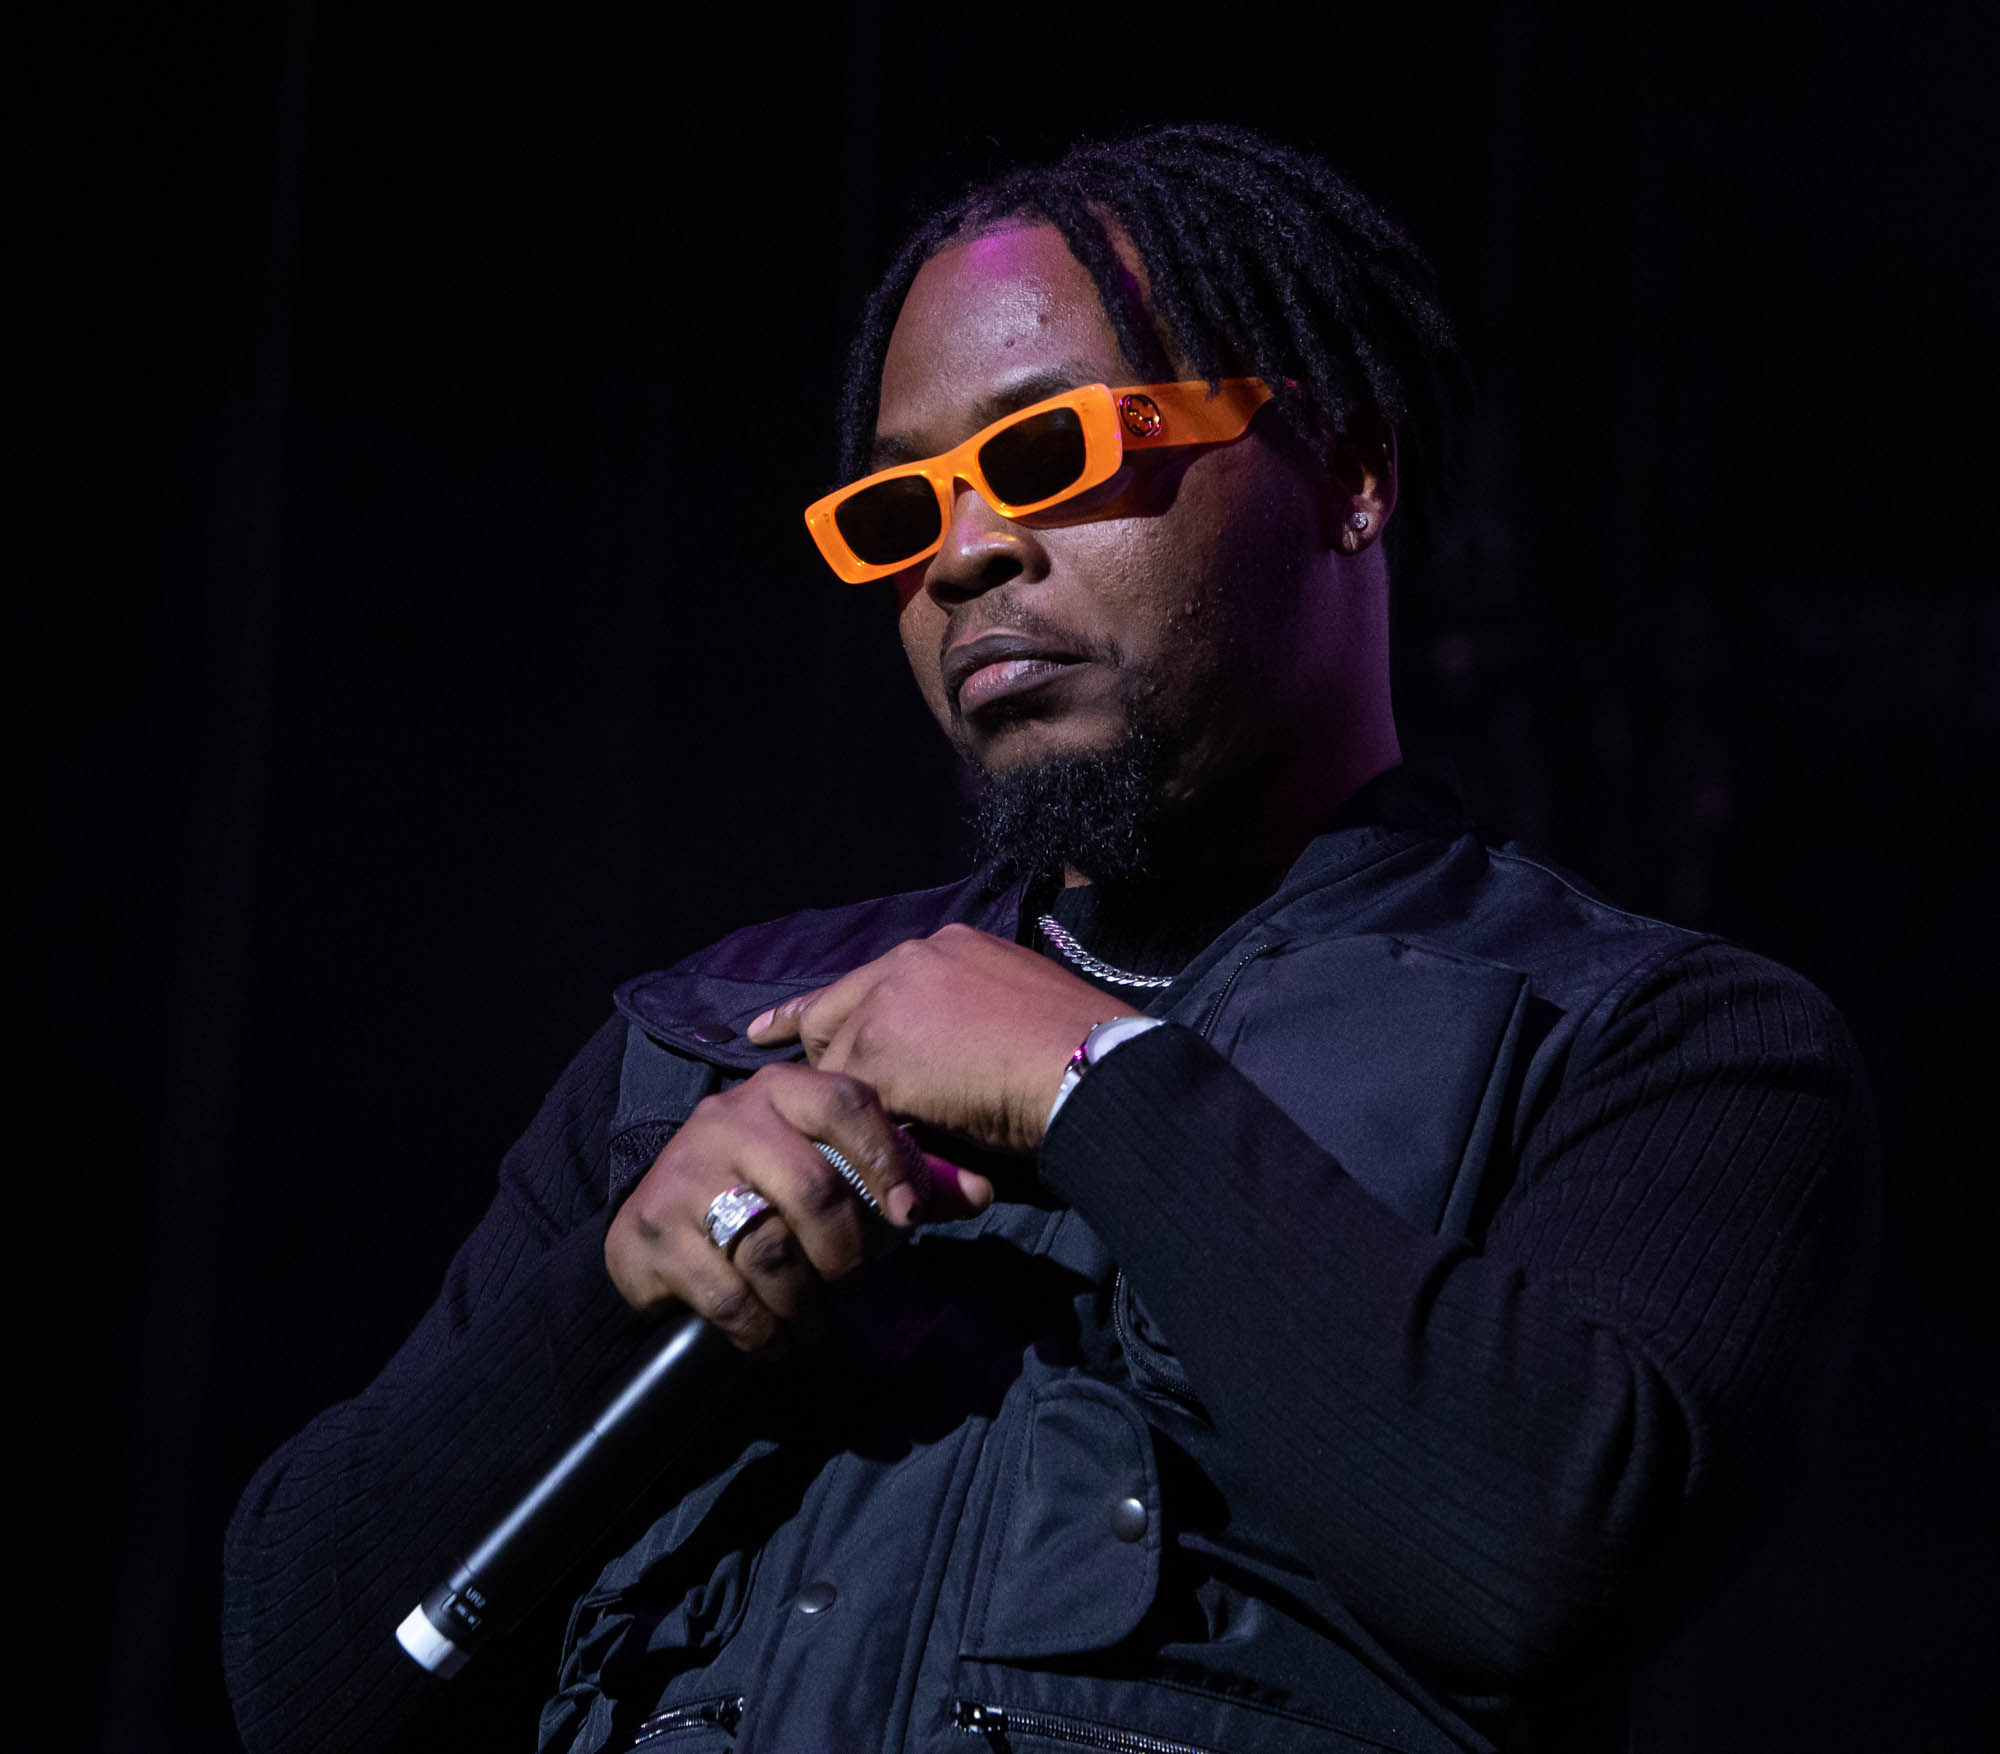 london, United Kingdom. 19th October 2019.  Olamide performing live at starboy fest at The 02 Arena. Photographed by Michael Tubes